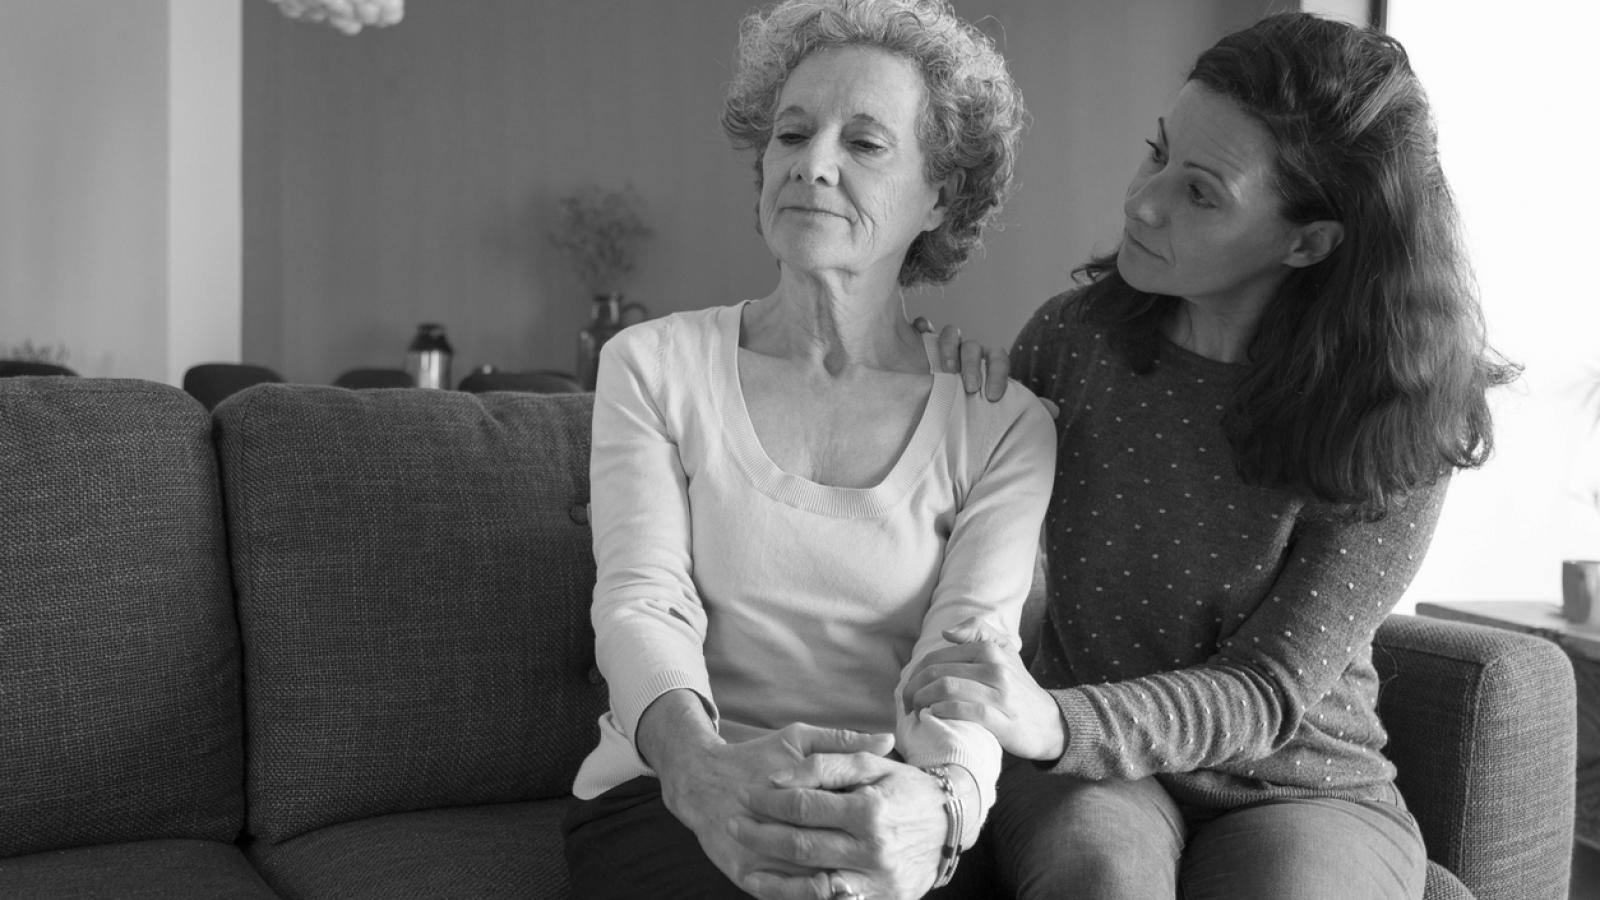 Younger woman consoling older woman on couch